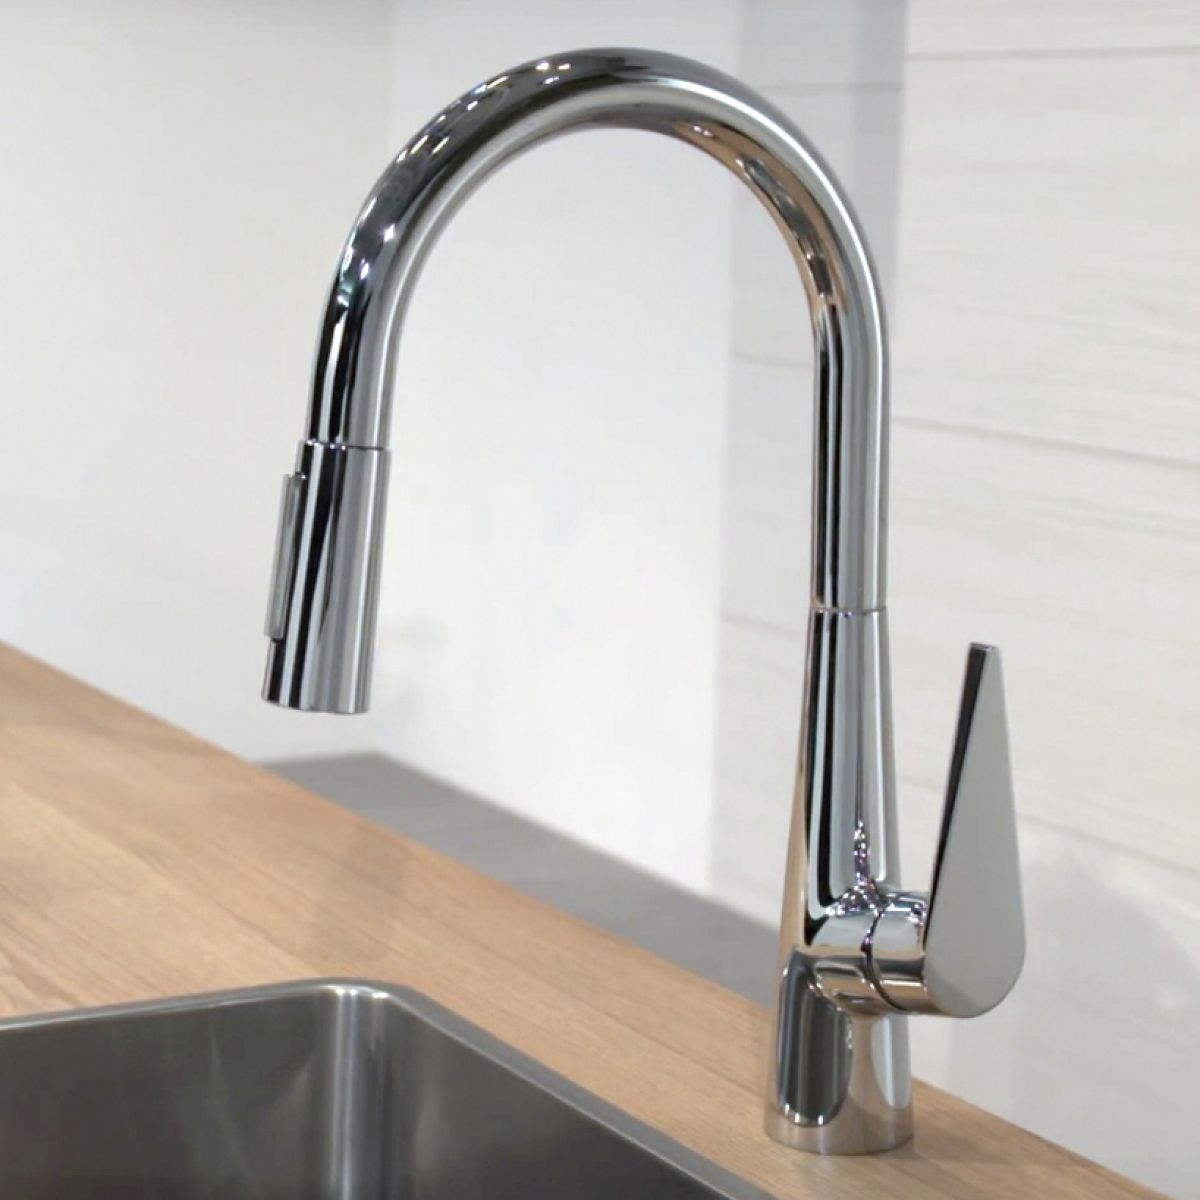 Hansgrohe Talis S 200 Kitchen Mixer Tap, with Pull-out Spray : UK ...